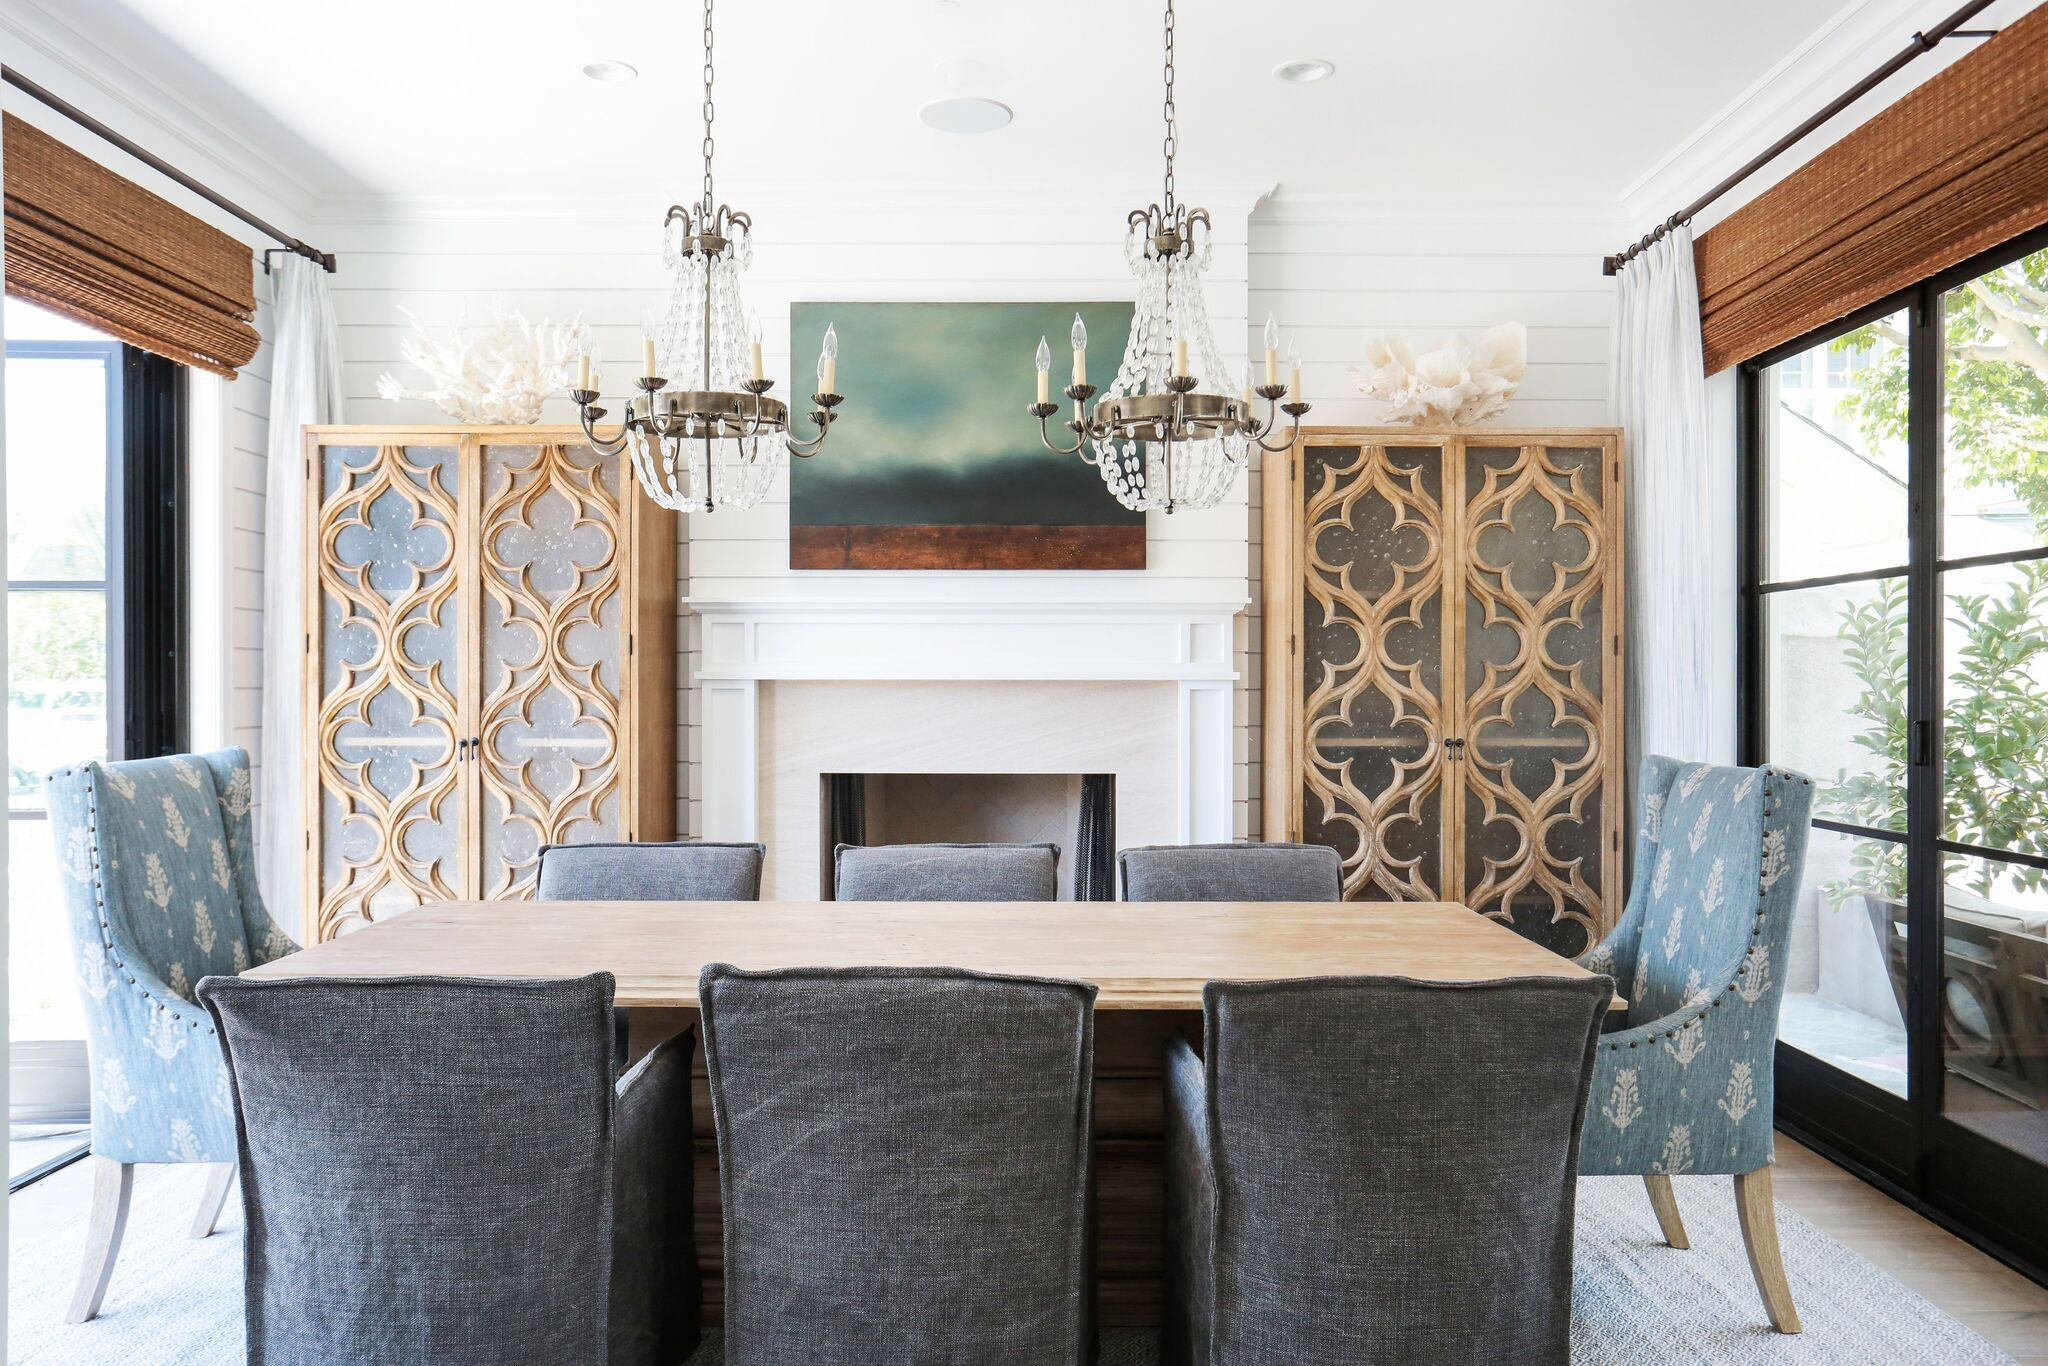 Sensational 6 Tips For Decorating With Coastal Style Year Round Decorating Largest Home Design Picture Inspirations Pitcheantrous